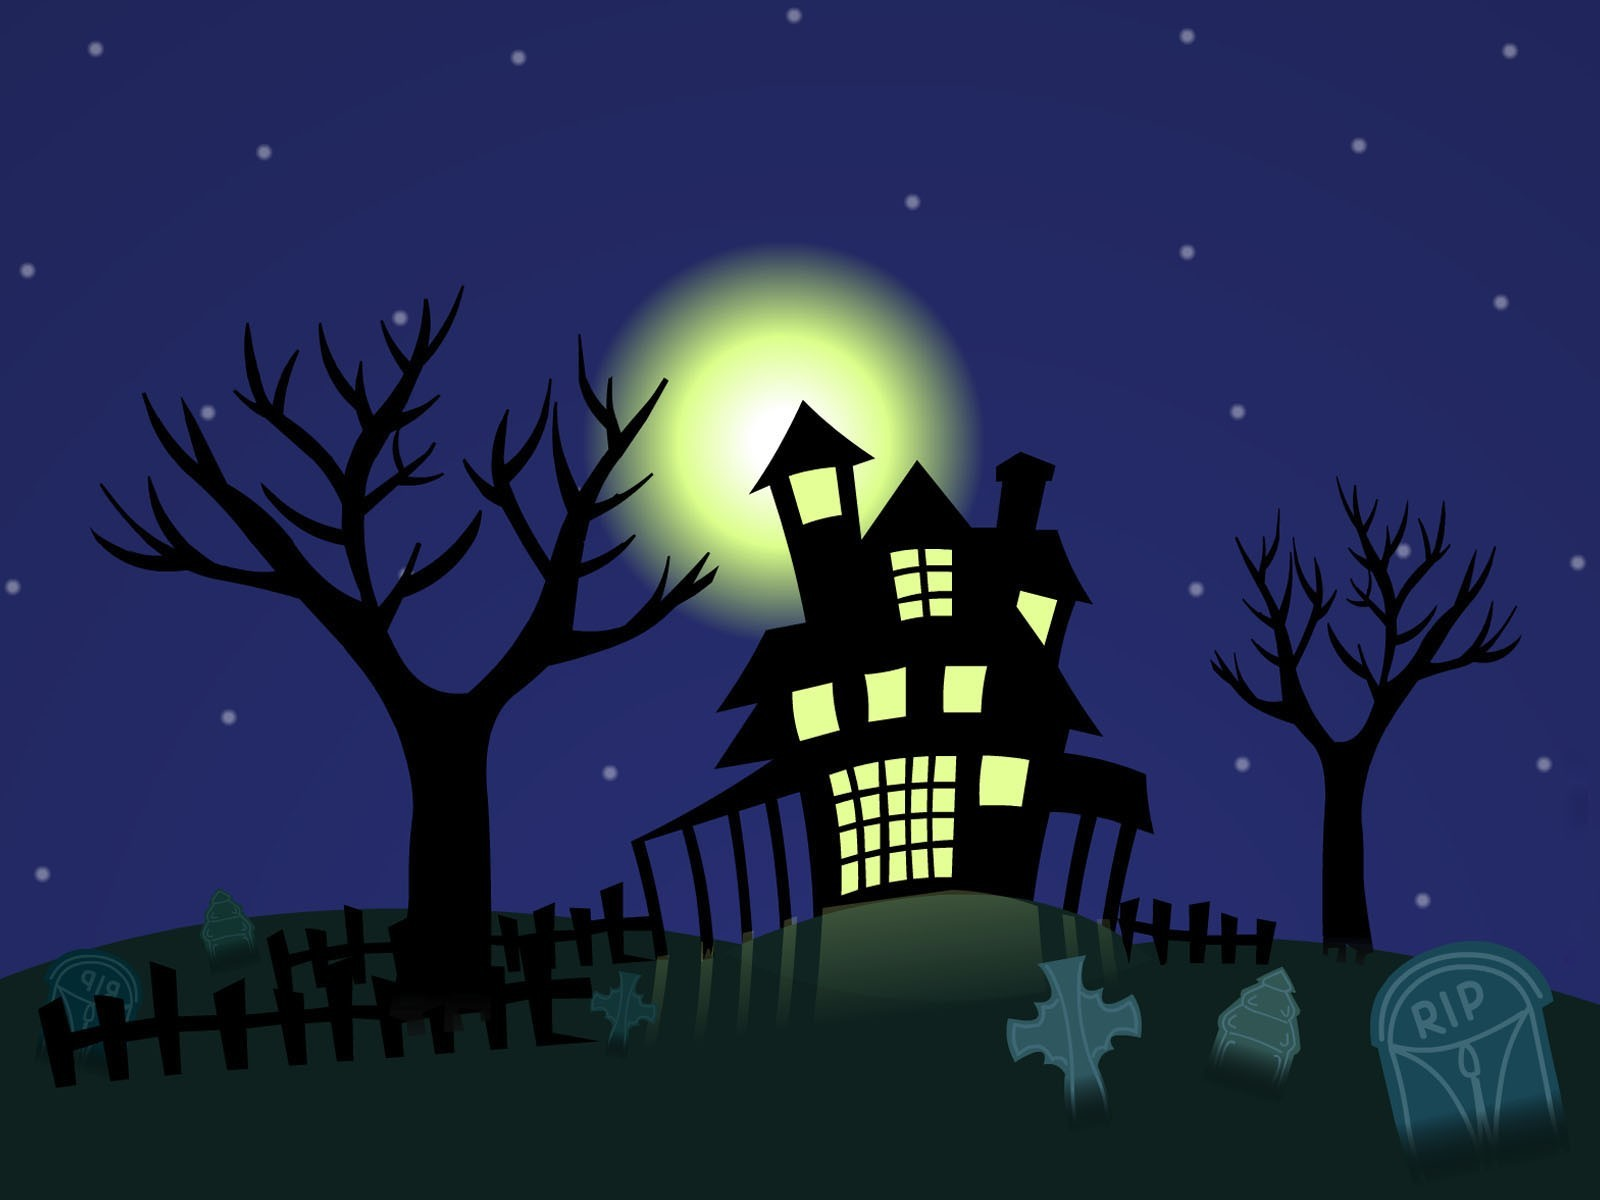 Stars moon cemetery Halloween HD Wallpaper